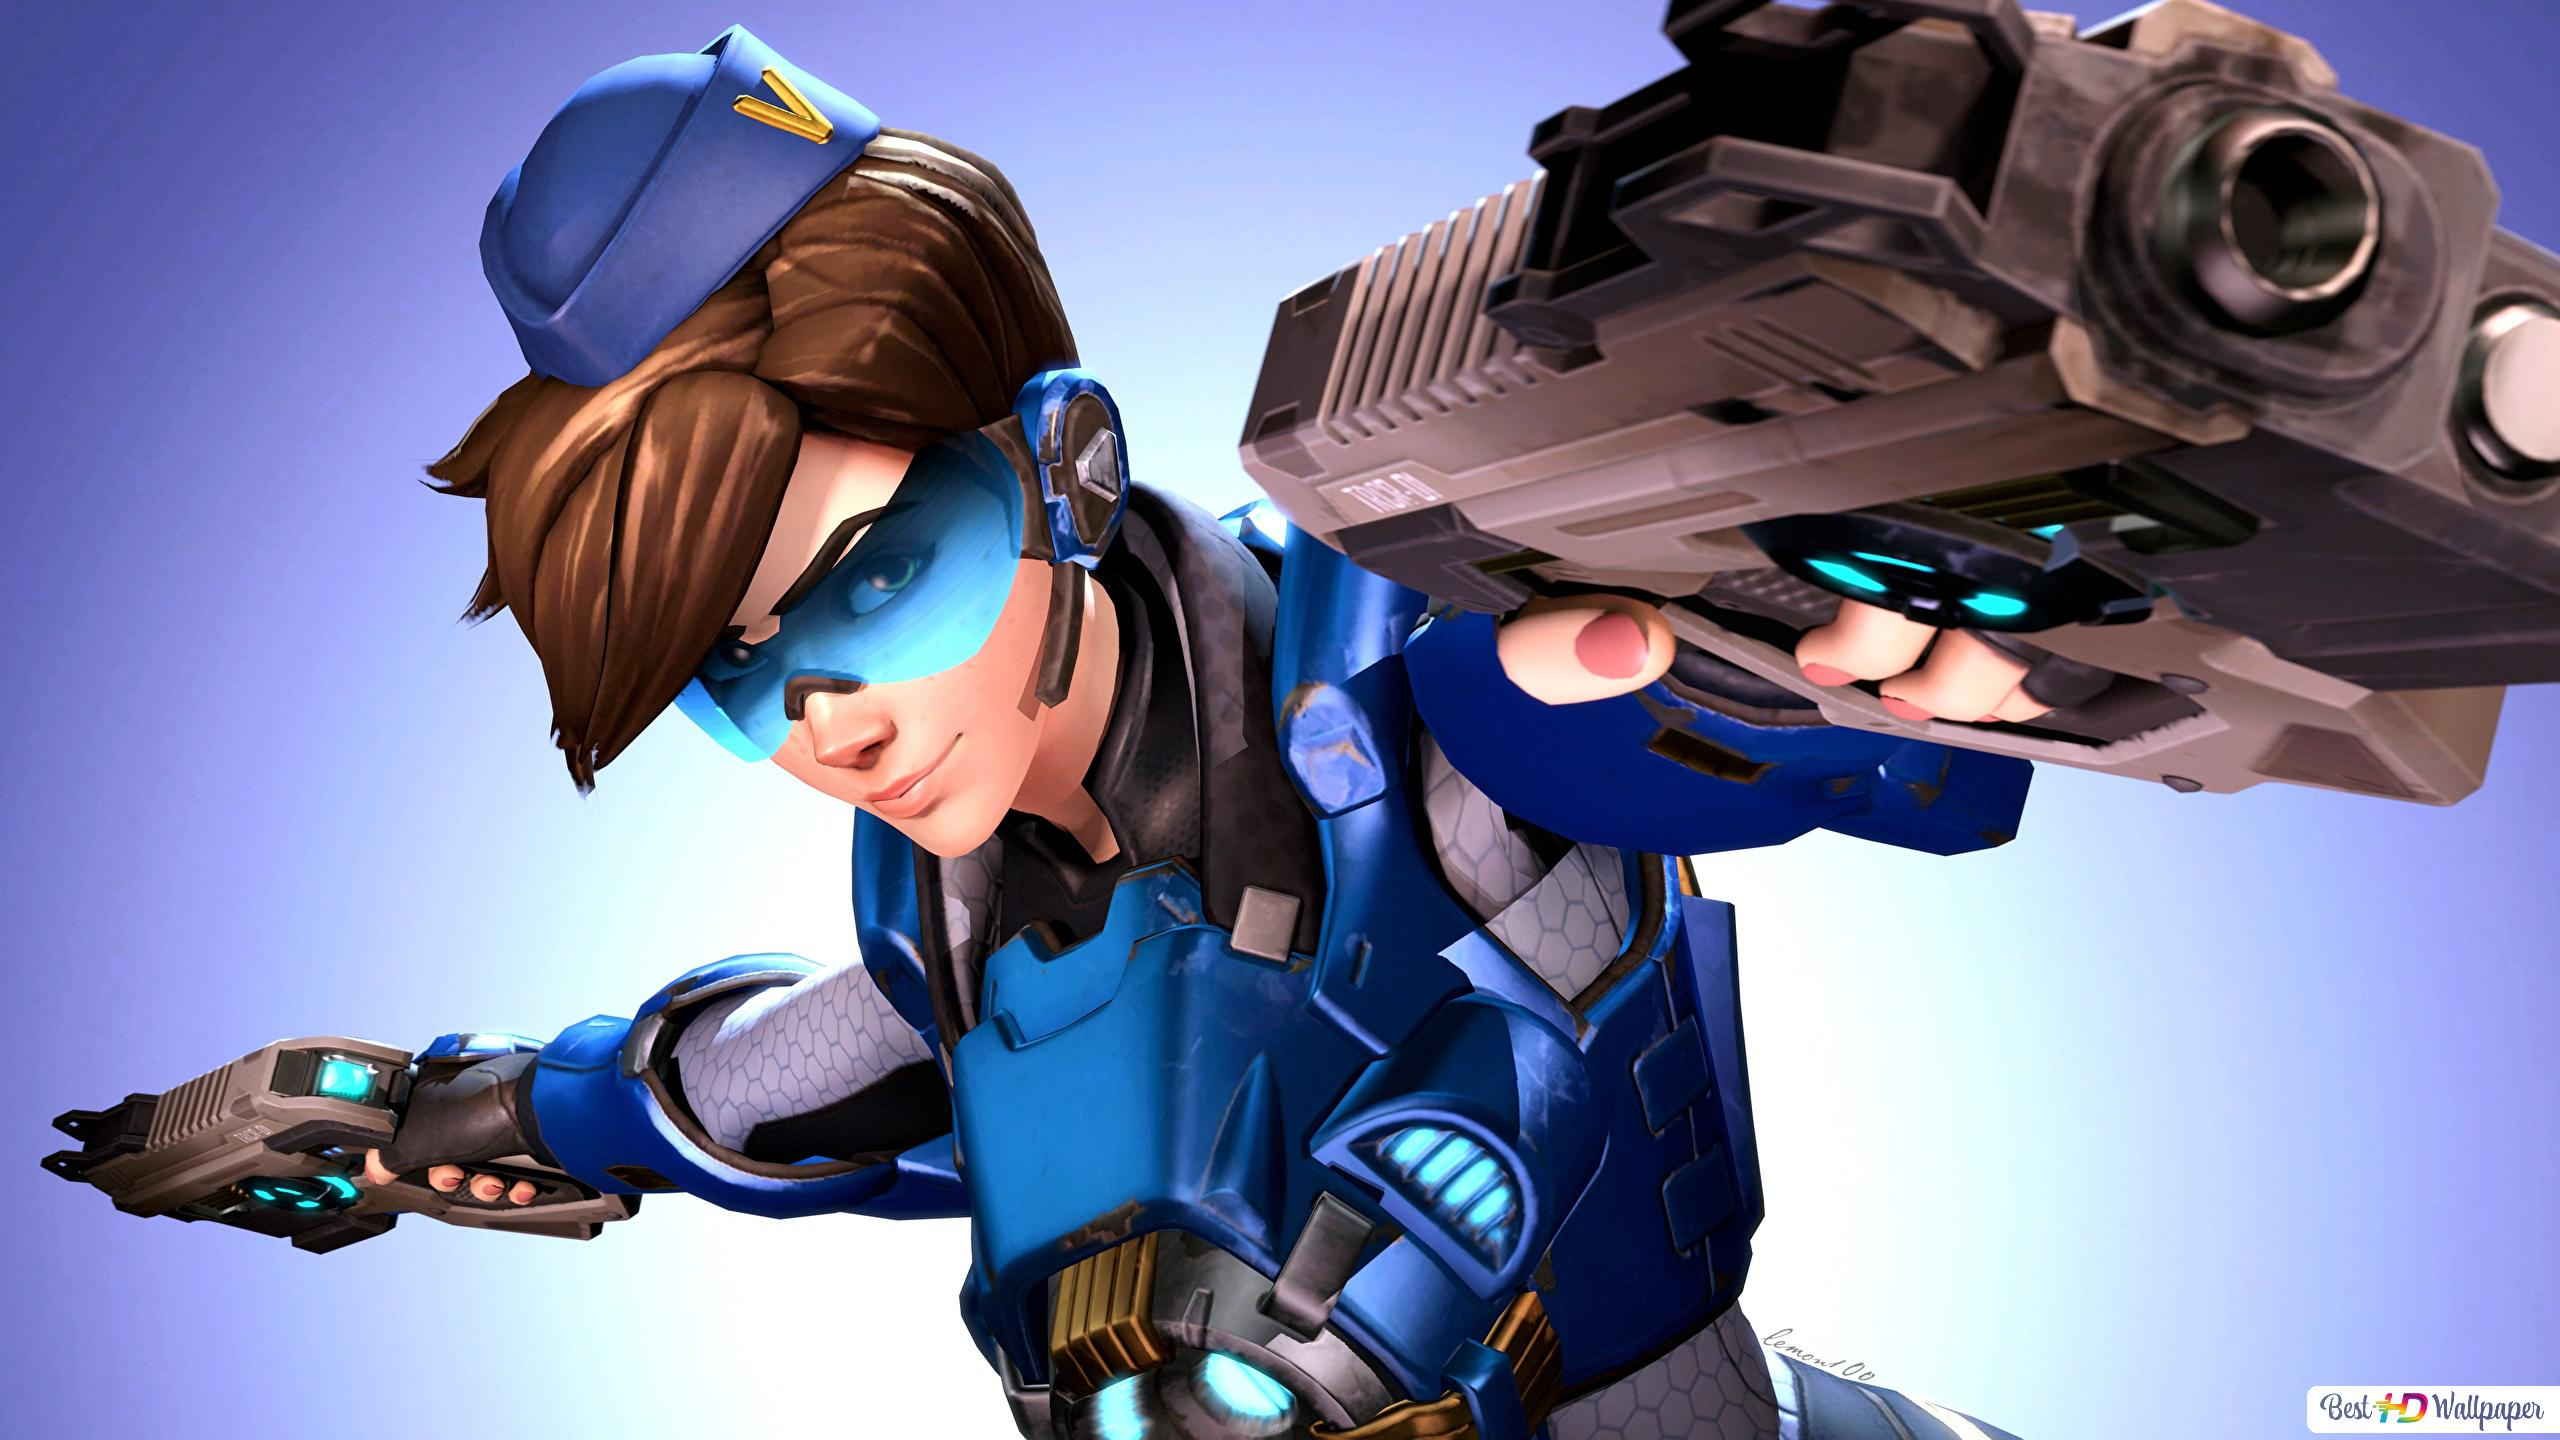 Overwatch Game Tracer With Pistols Hd Wallpaper Download